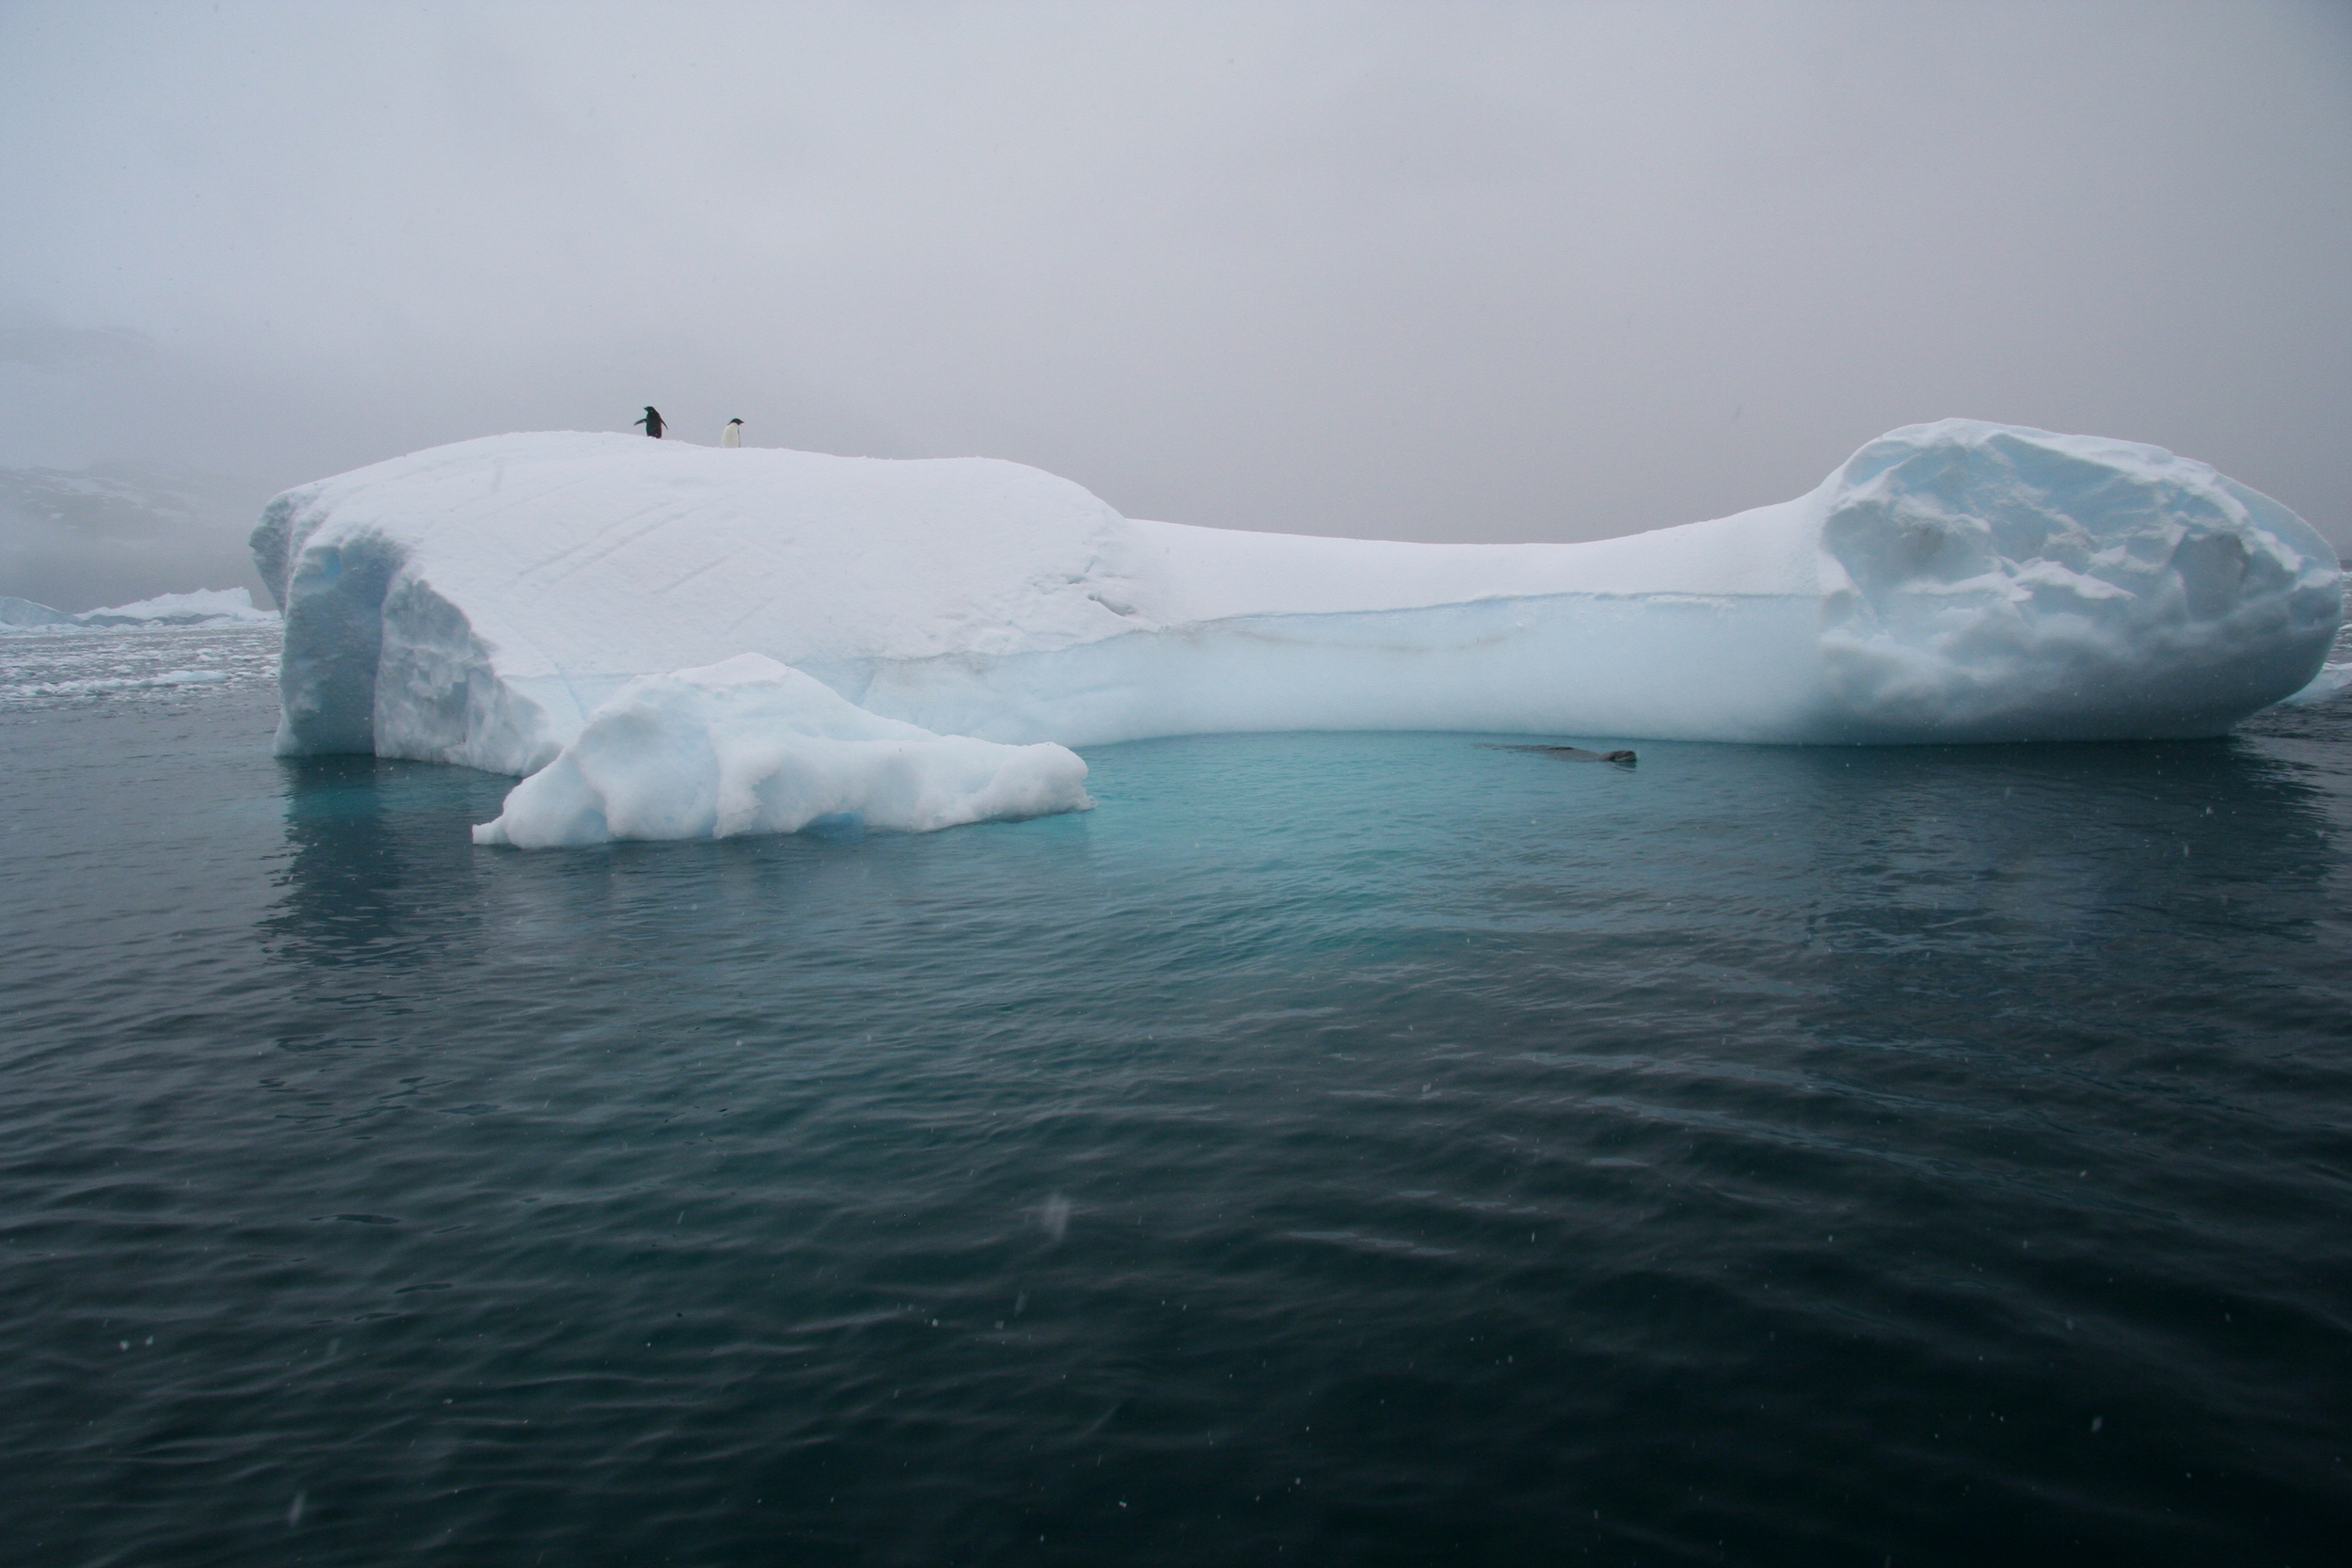 Two penguins on top of an iceberg, waiting for a killer seal to lose interest